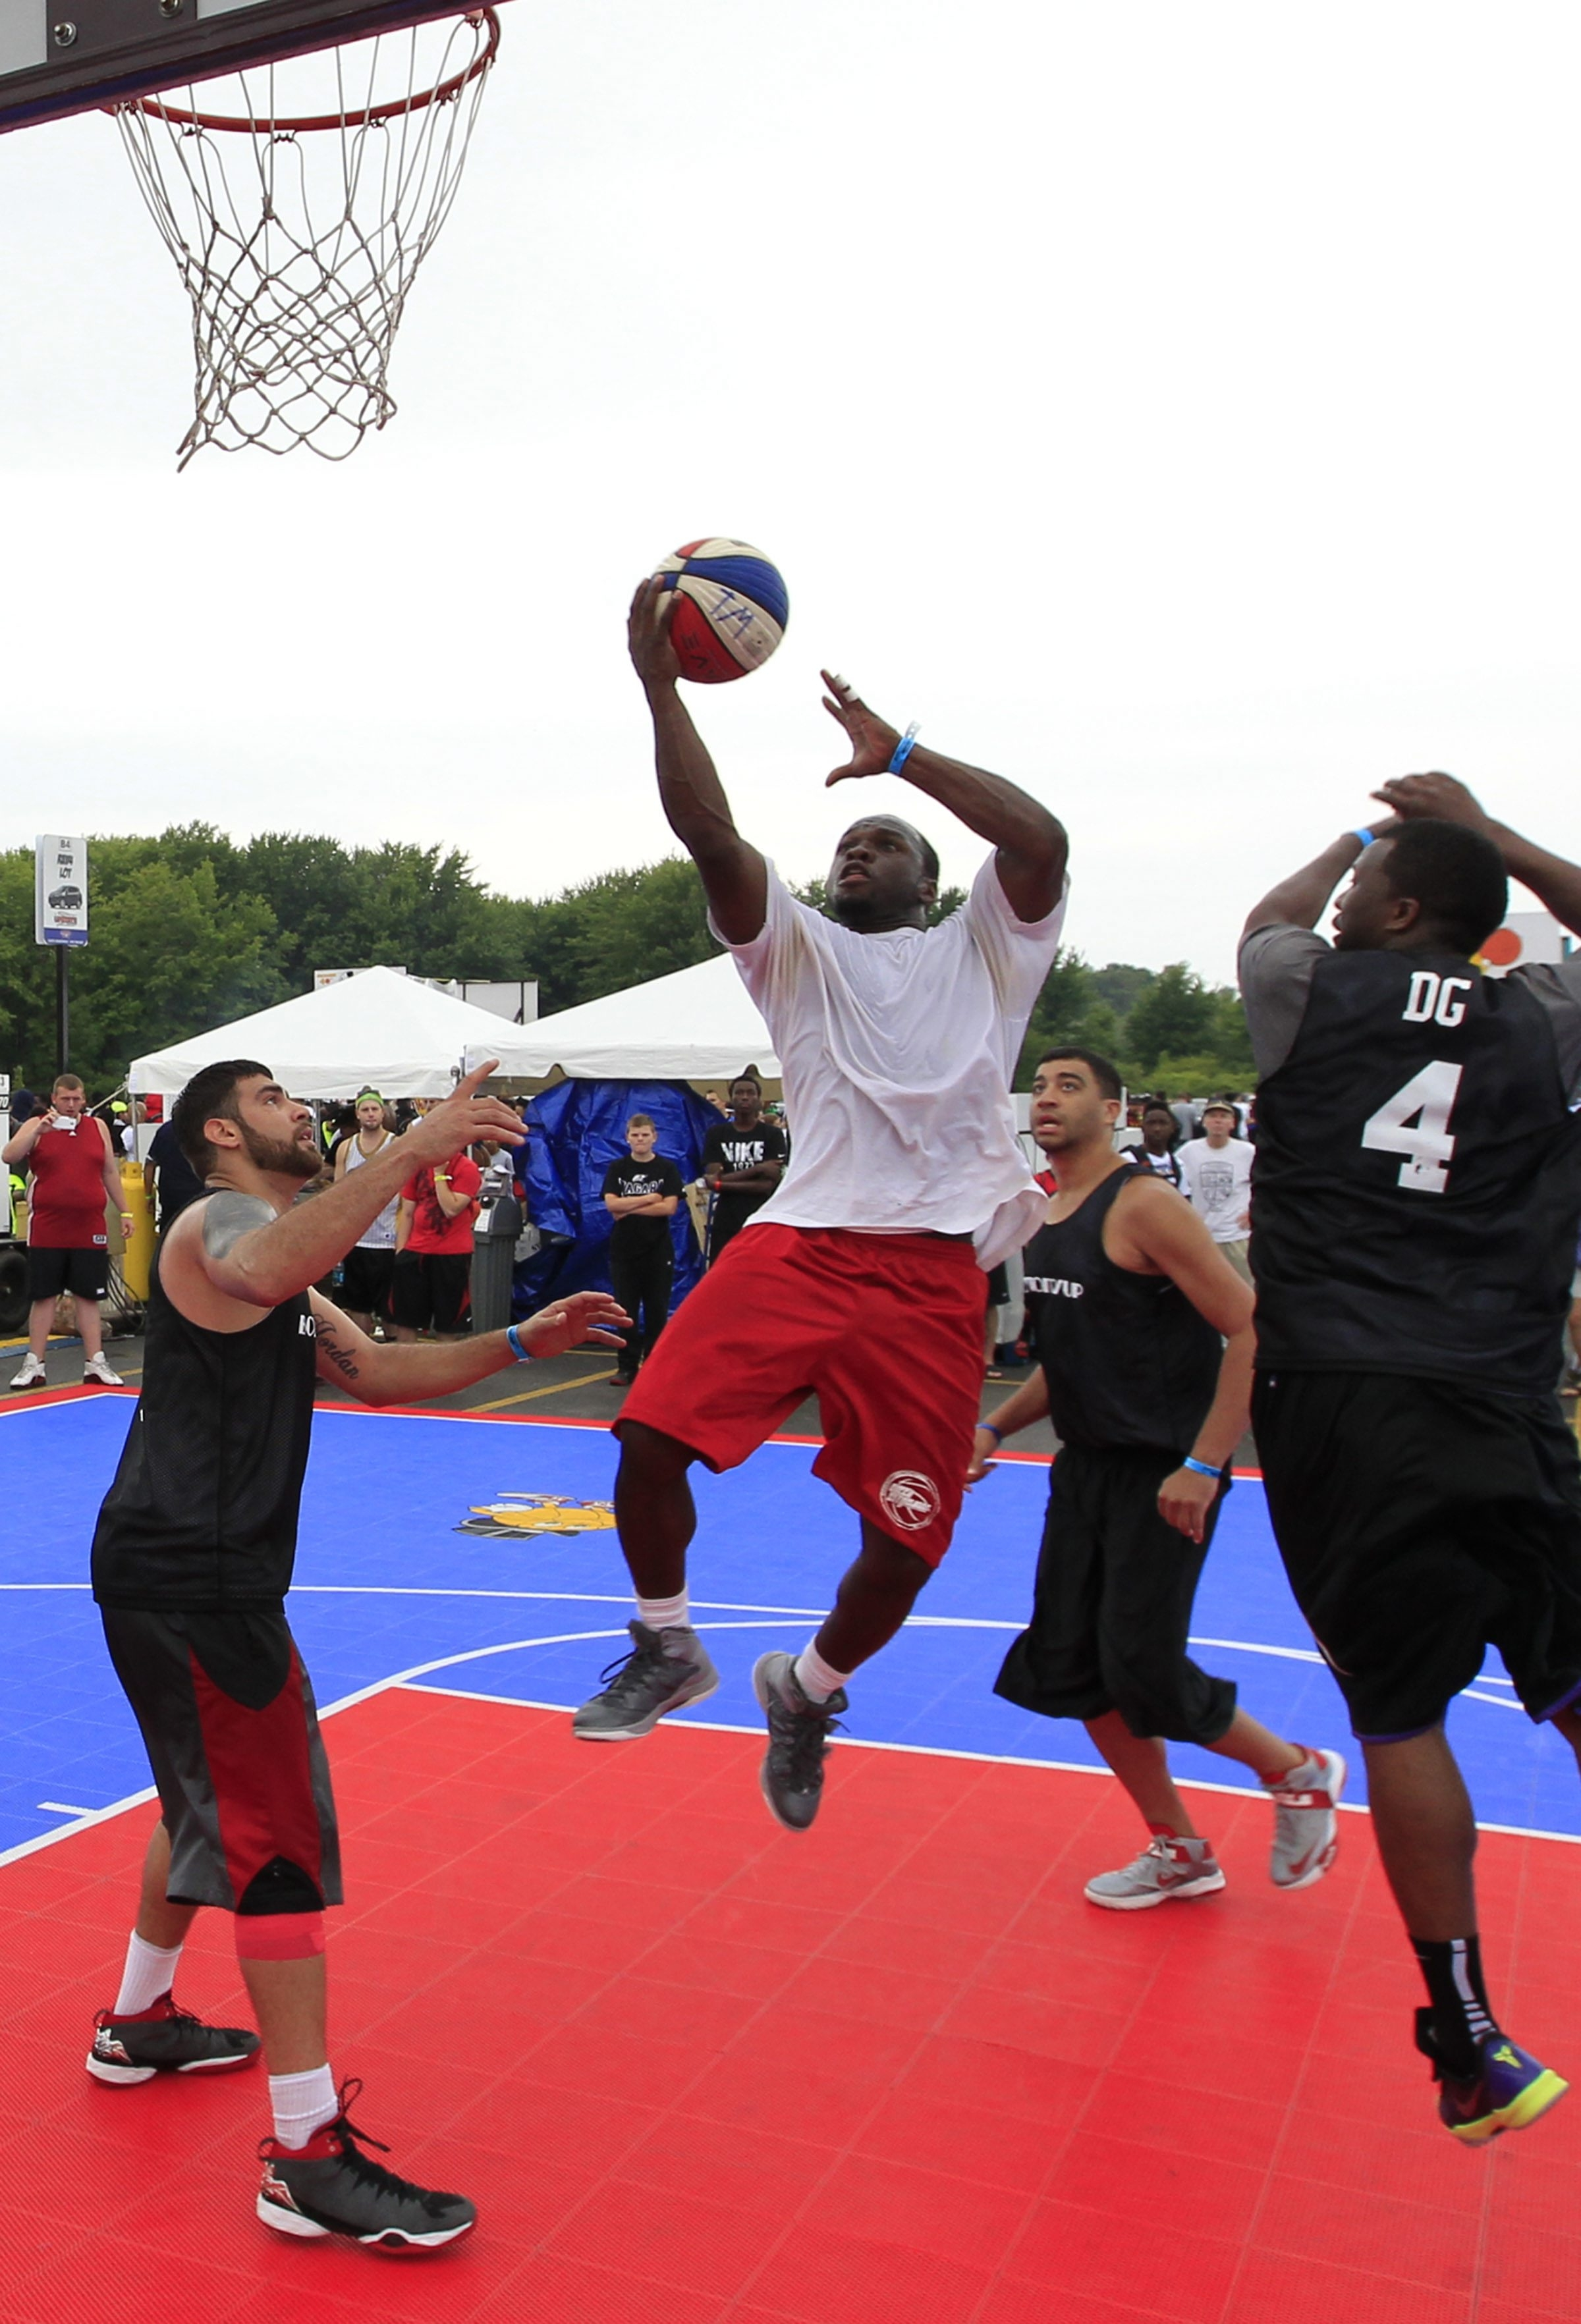 Maceo Wofford from the Team Breth had 13 of his team's 18 points in the Gus Macker men's final.